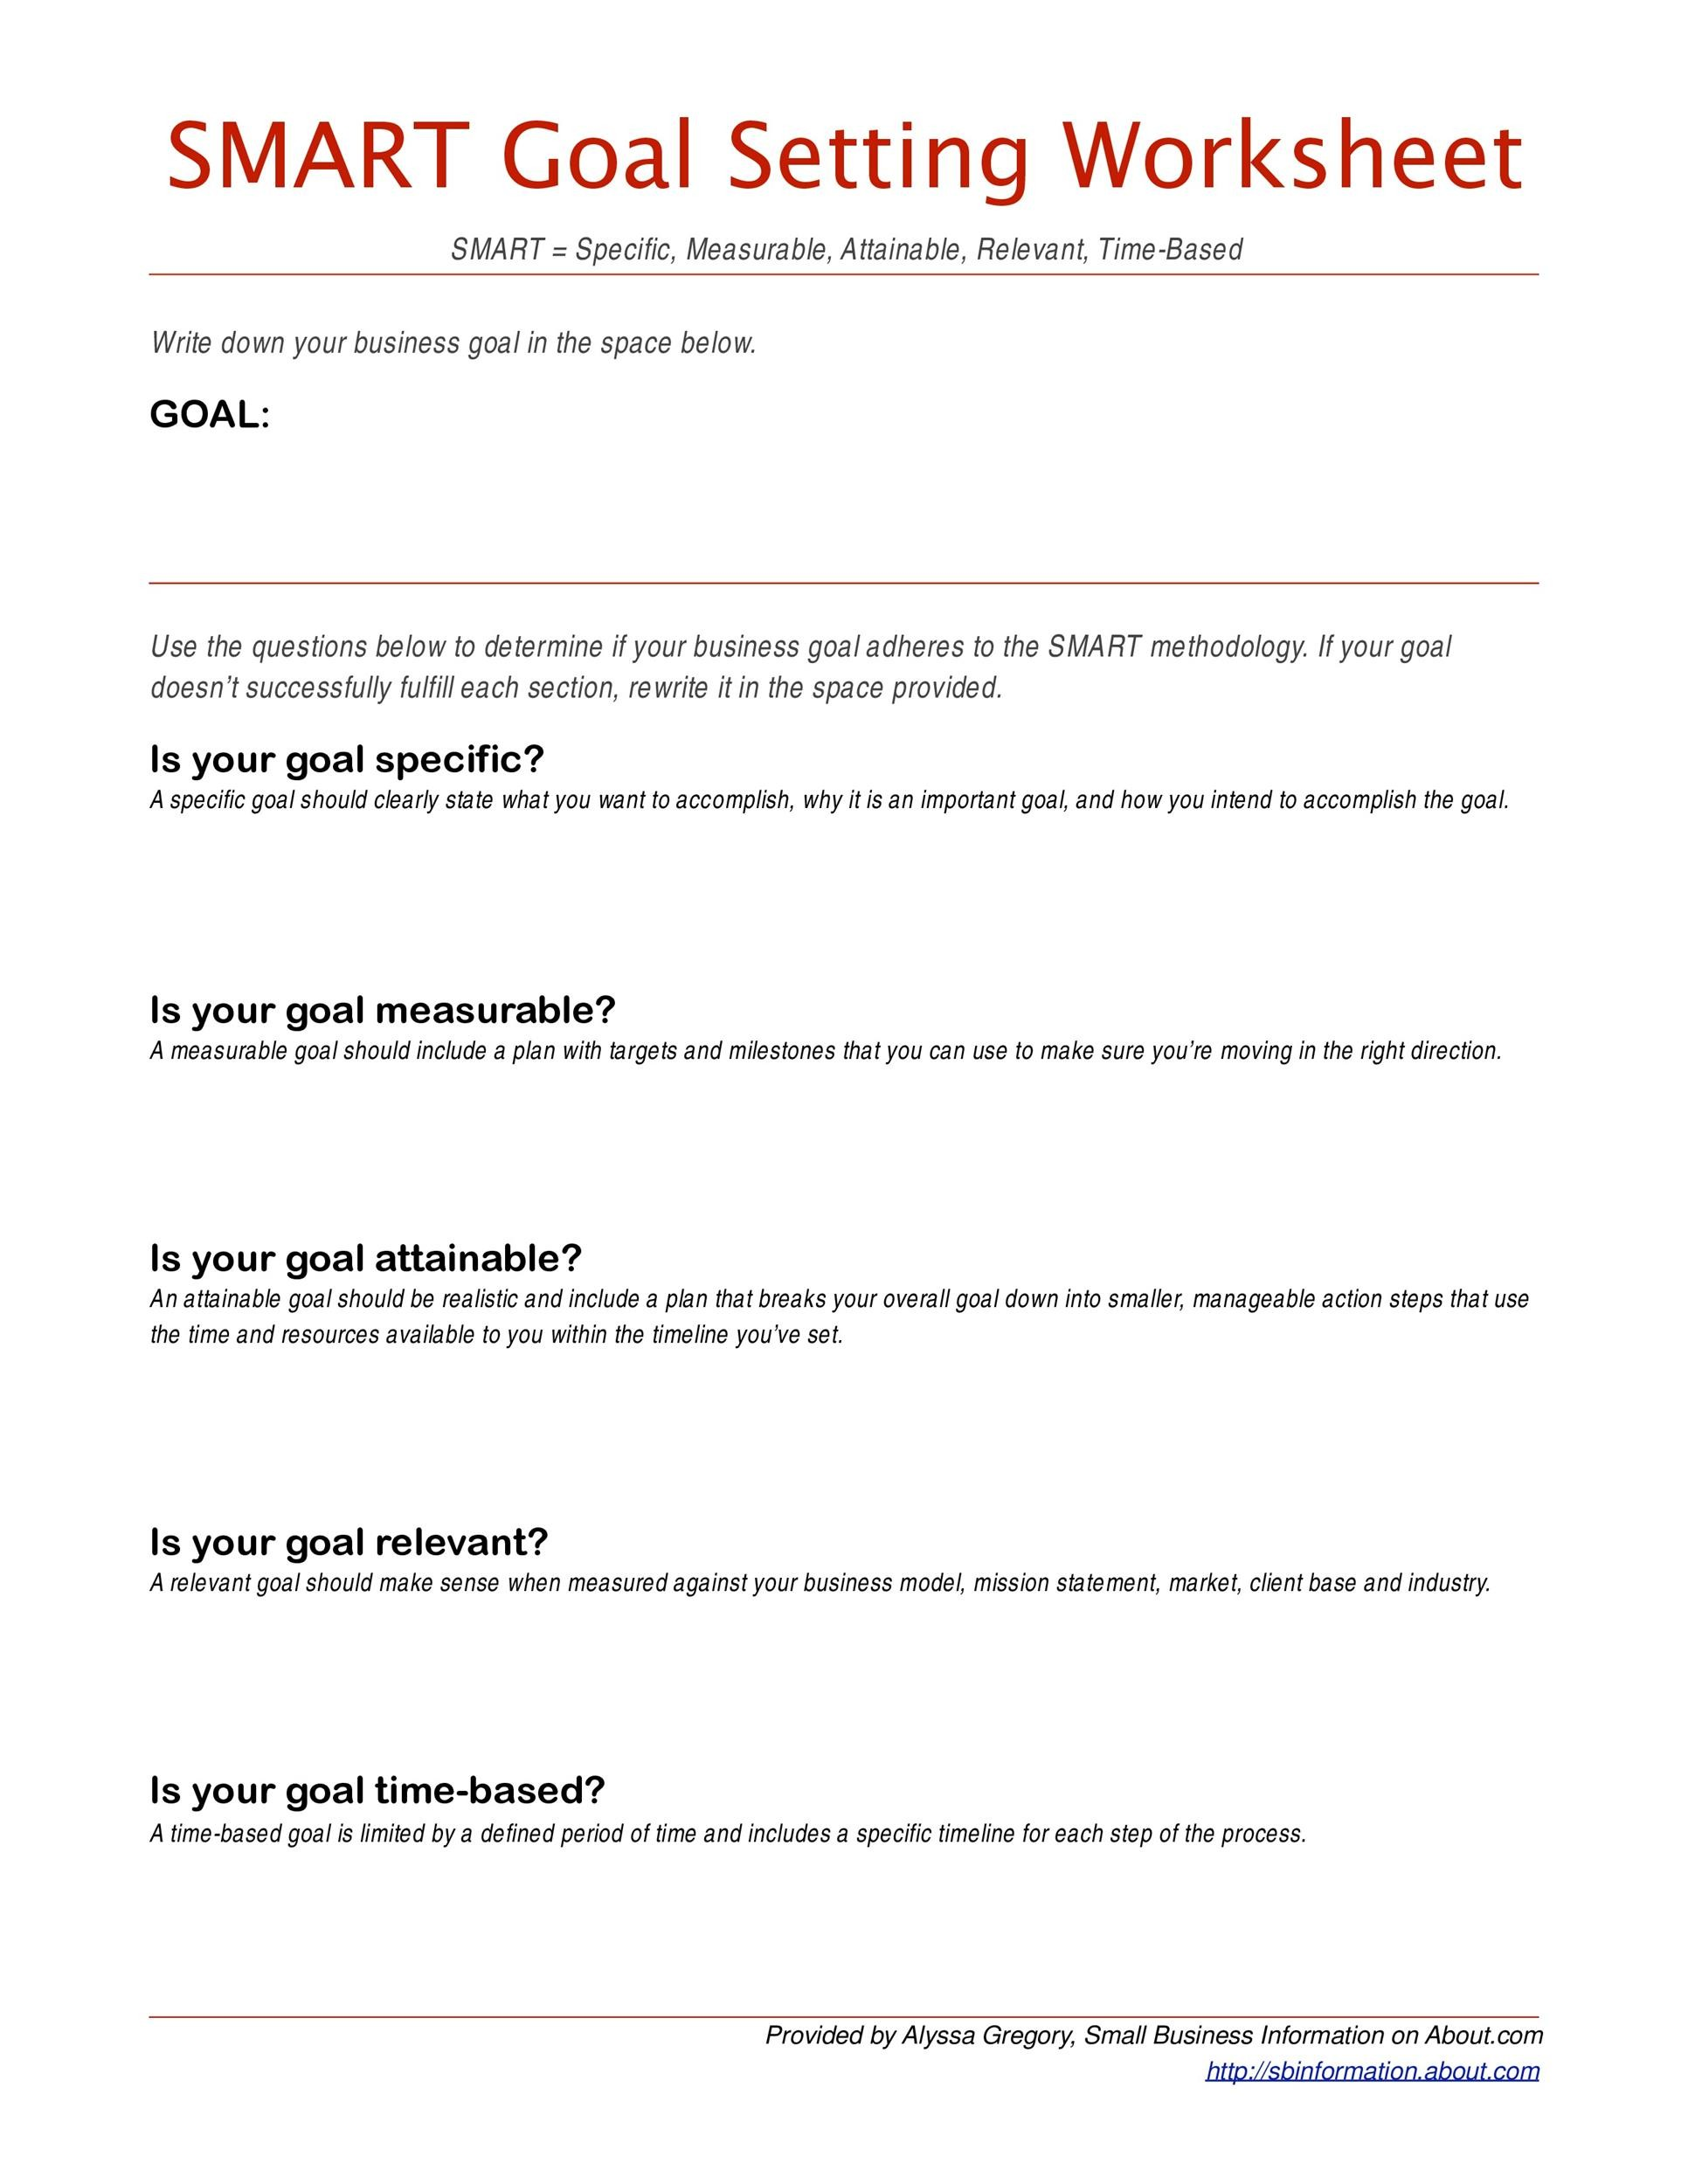 Worksheets Smart Goal Setting Worksheet 48 smart goals templates examples worksheets template lab printable 40